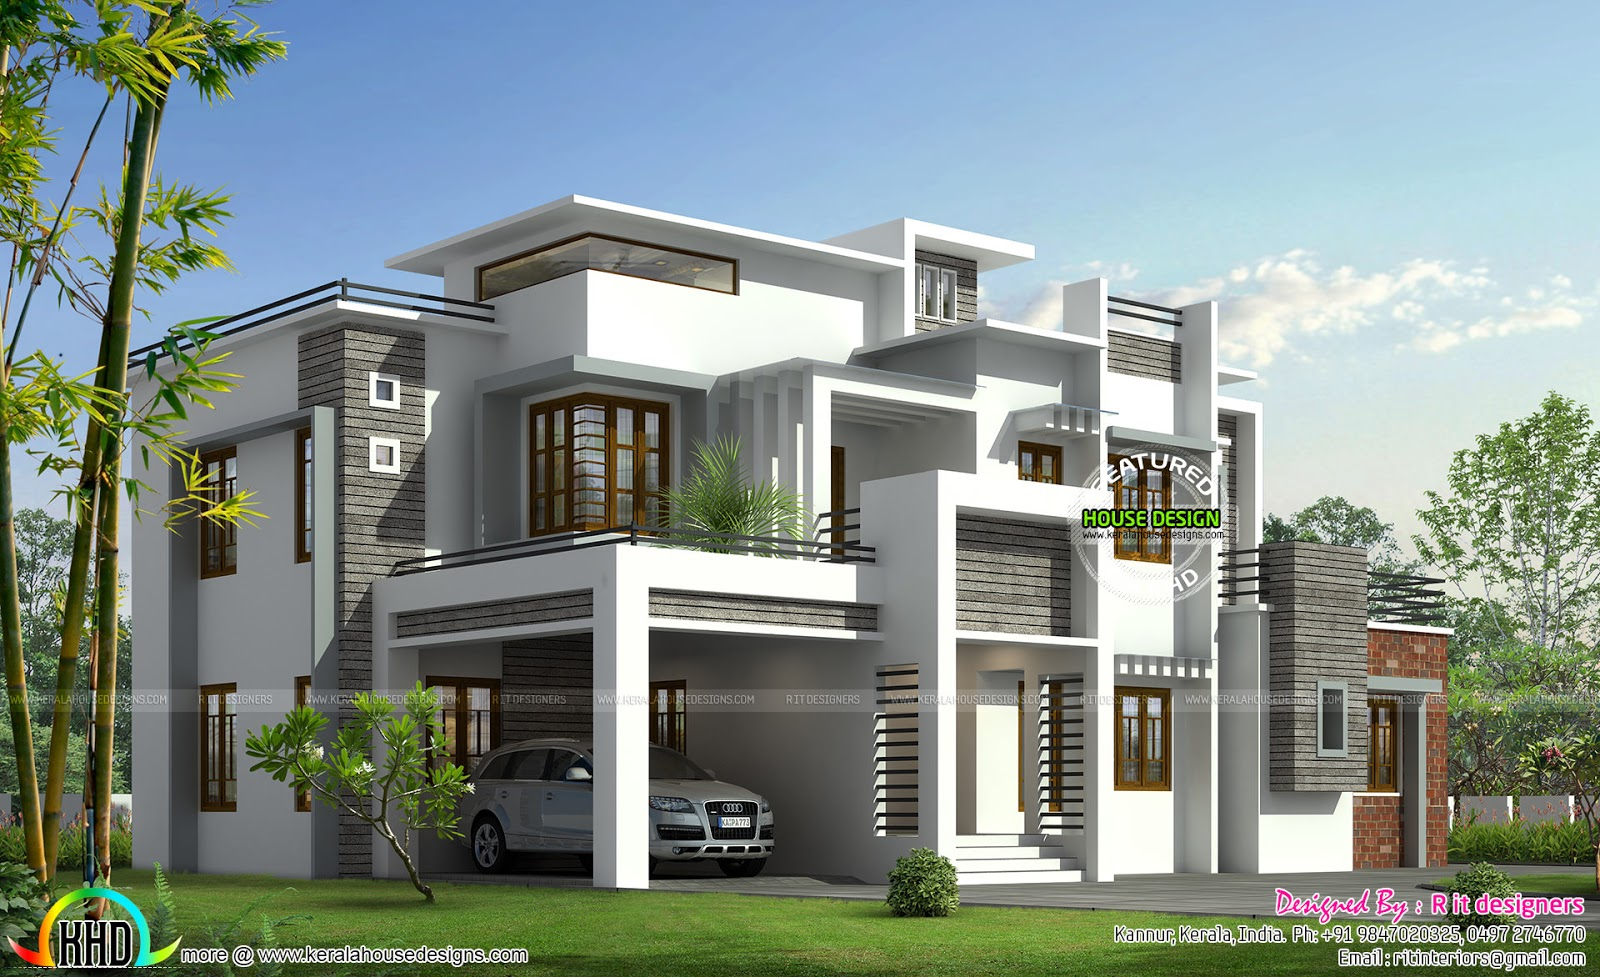 Box model contemporary house kerala home design and for Modern house designs images